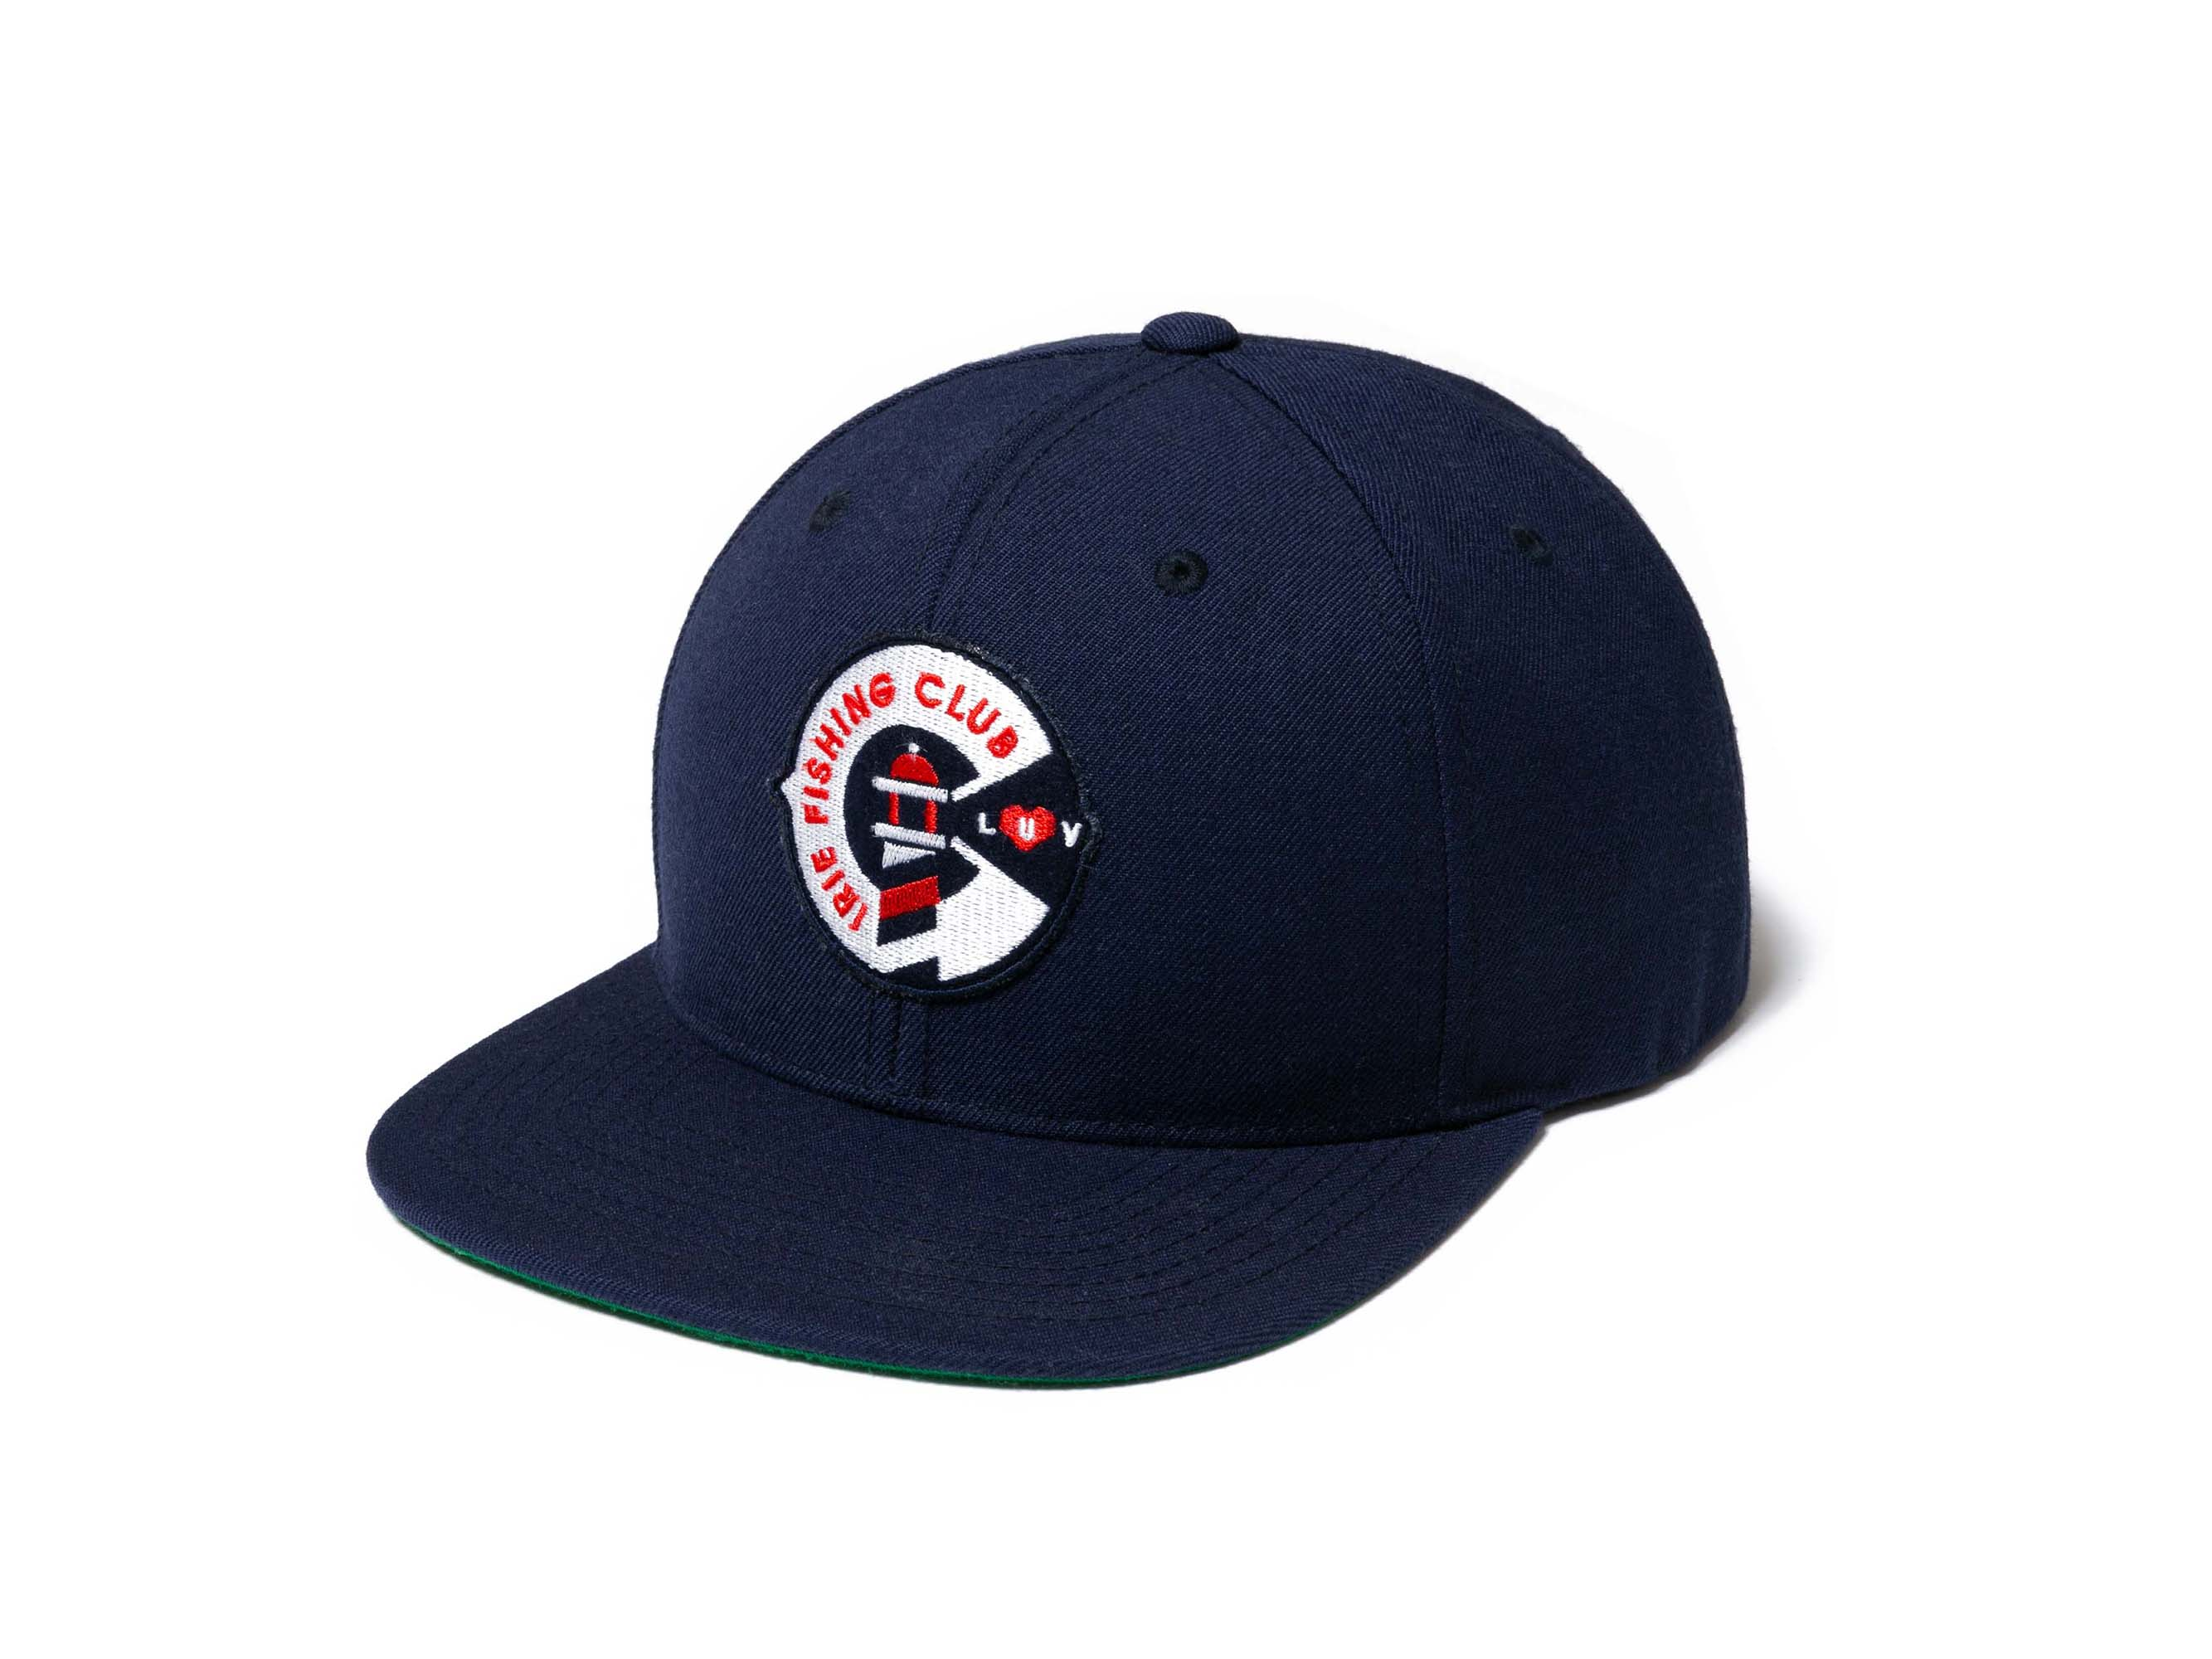 C-LUV SNAP BACK B.B CAP - IRIE FISHING CLUB